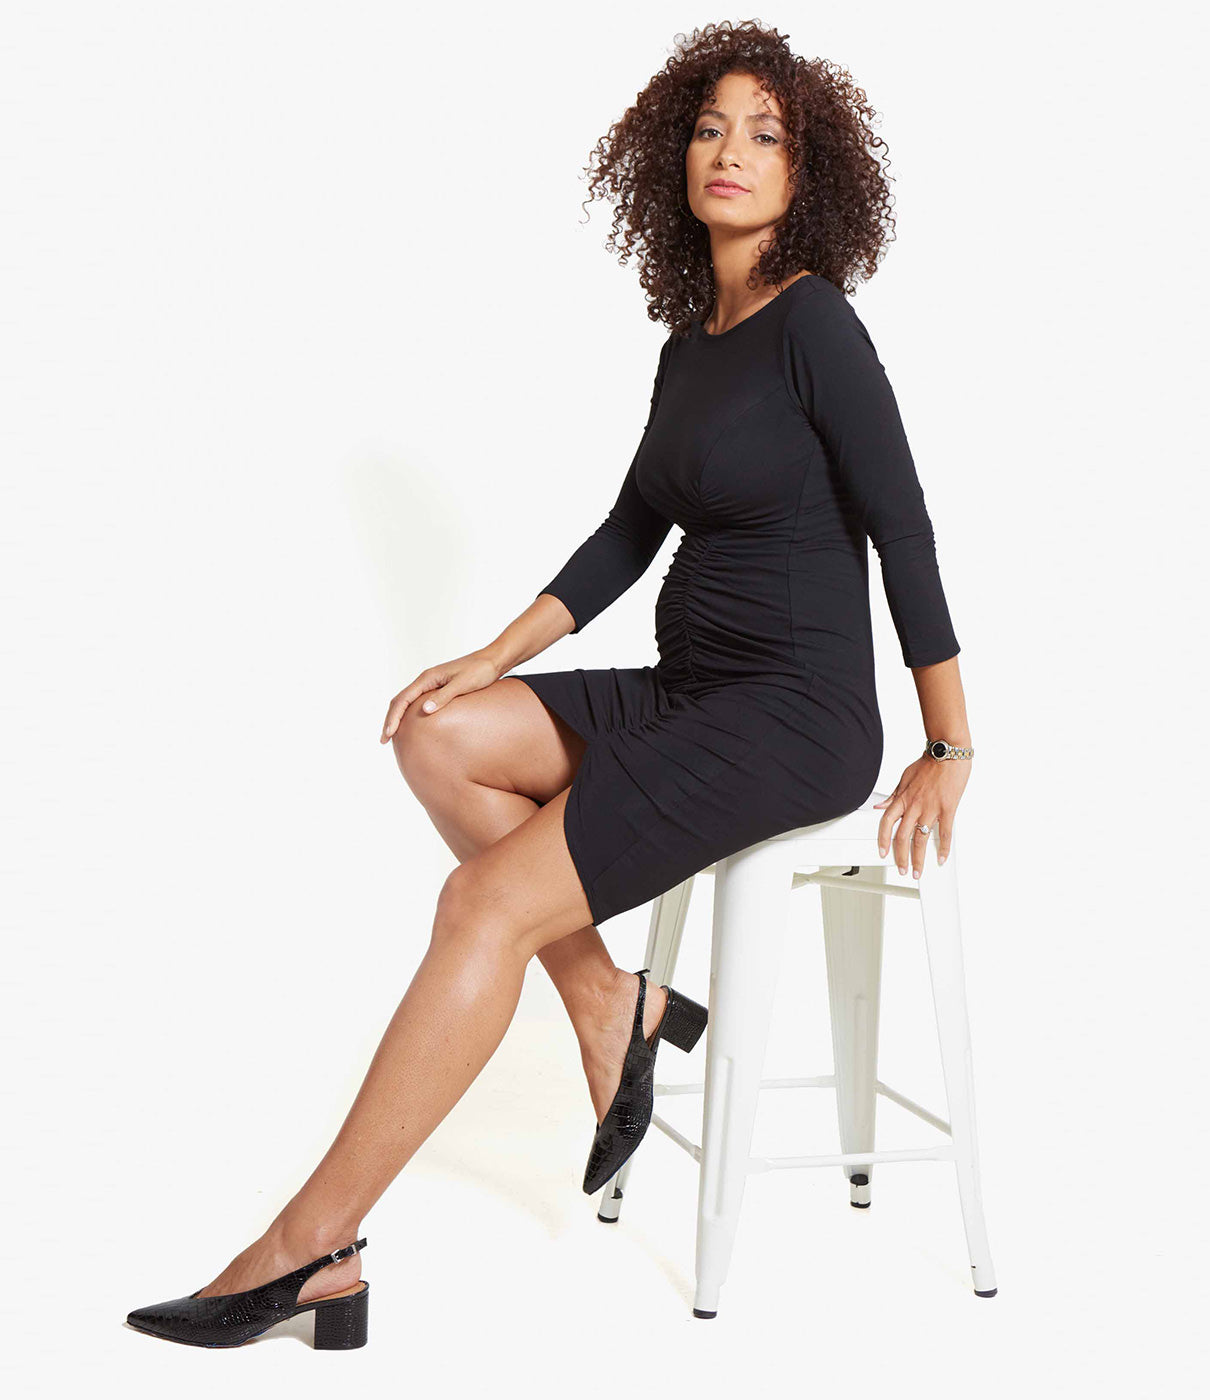 FLATTERING FITSide ruching and a subtly sexy slit take this flattering bodycon fit to the next level.